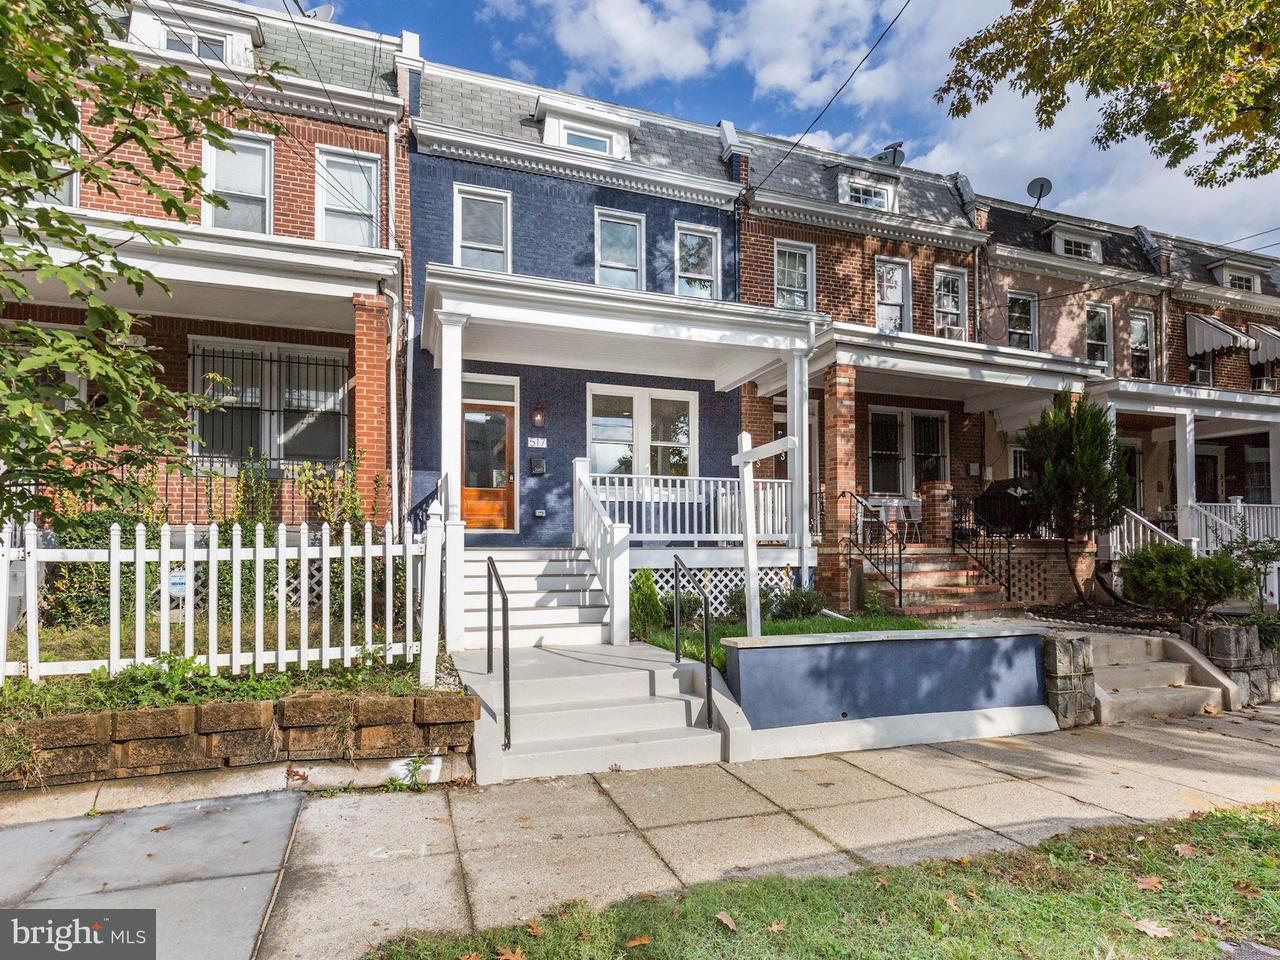 Townhouse for Sale at 517 LONGFELLOW ST NW 517 LONGFELLOW ST NW Washington, District Of Columbia 20011 United States